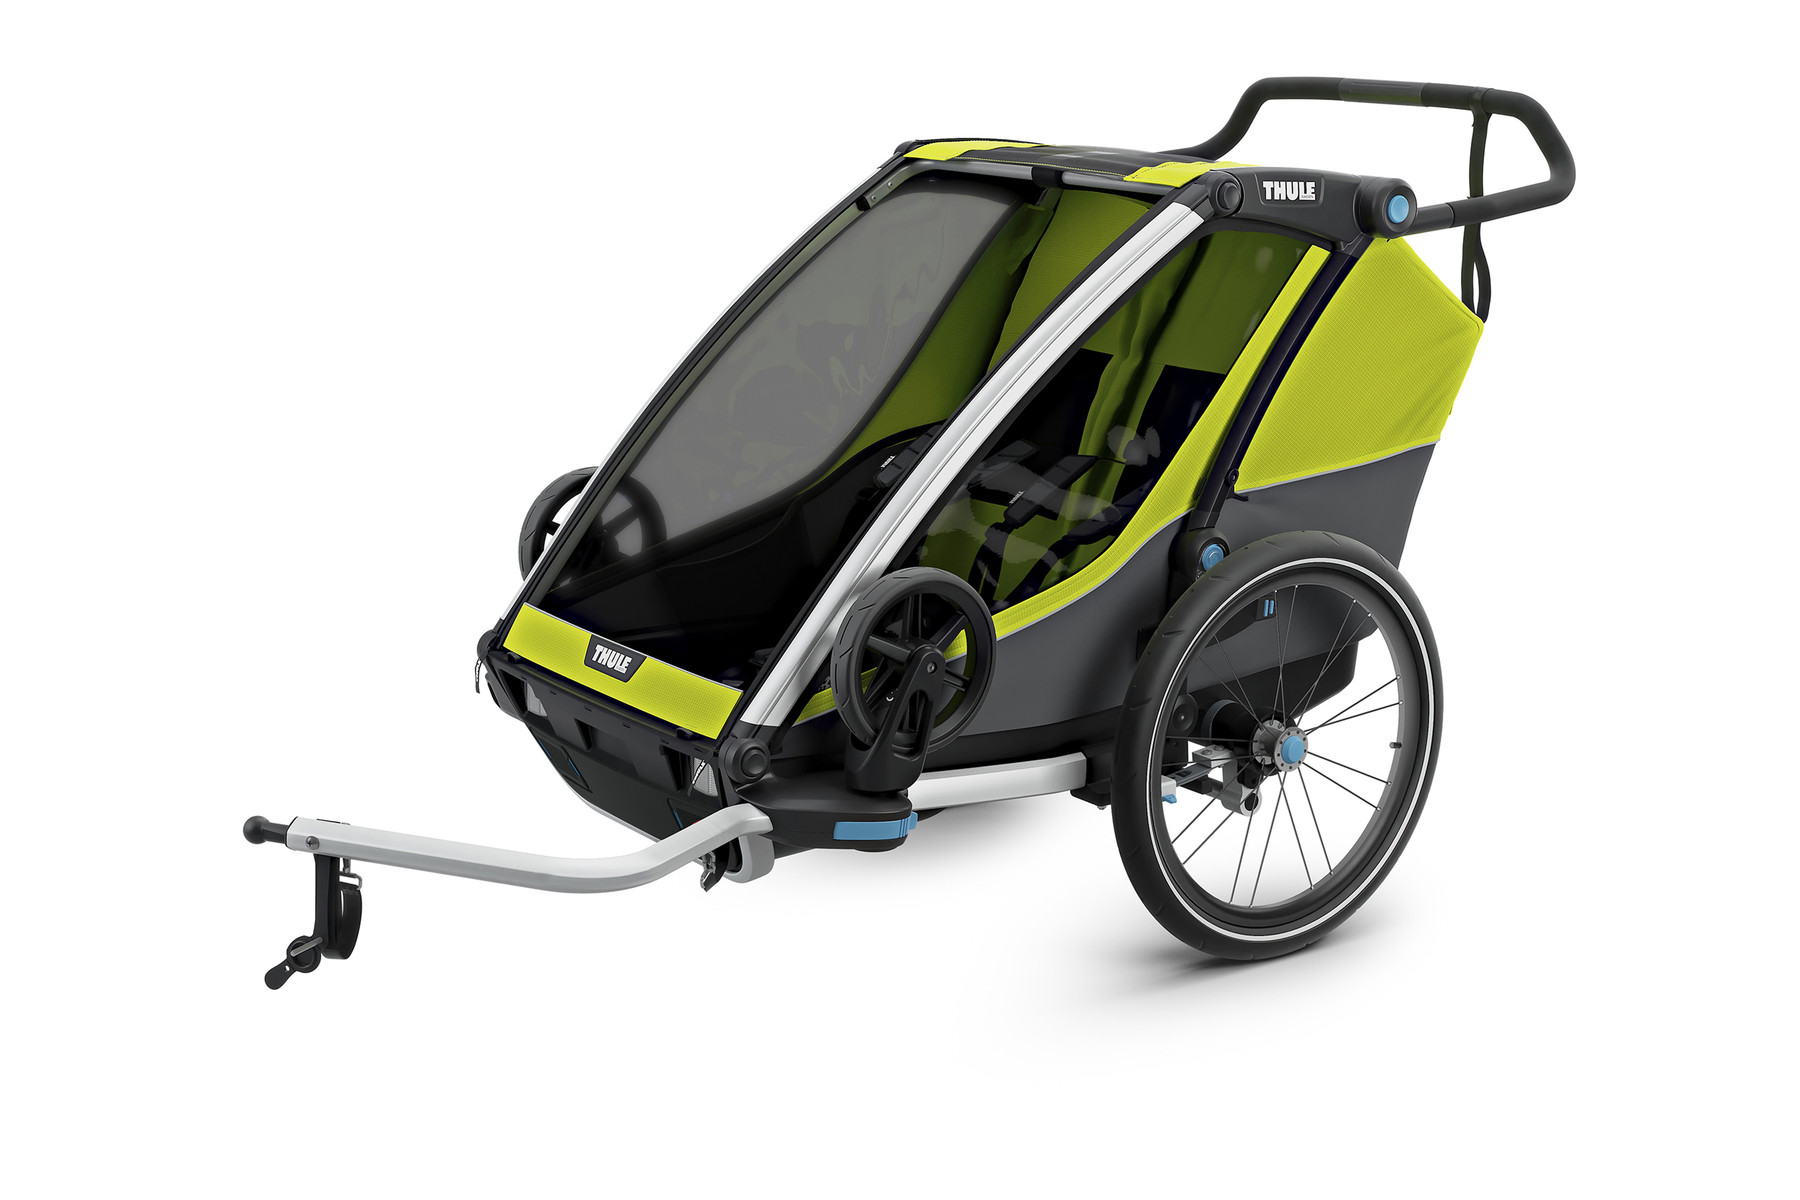 THULE Chariot Cab 2 ChartreuseDark Shadow